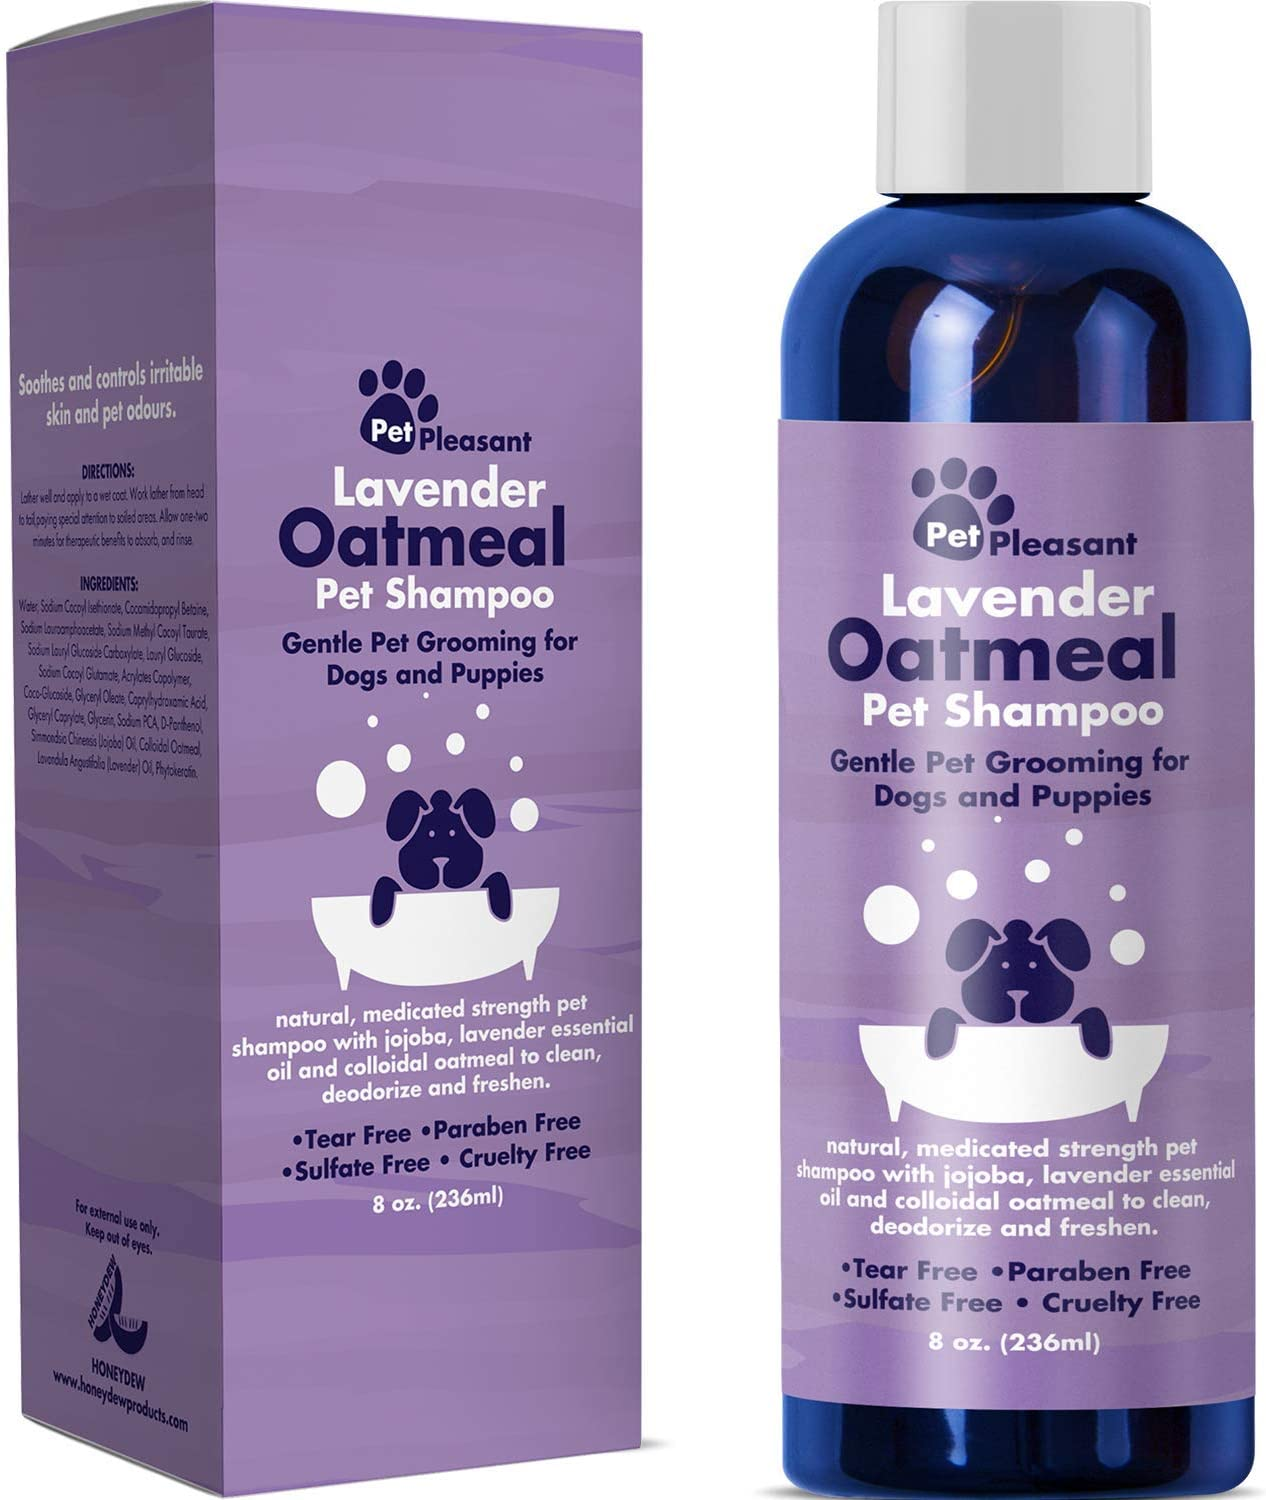 7. HONEYDEW Natural Dog Shampoo with Colloidal Oatmeal